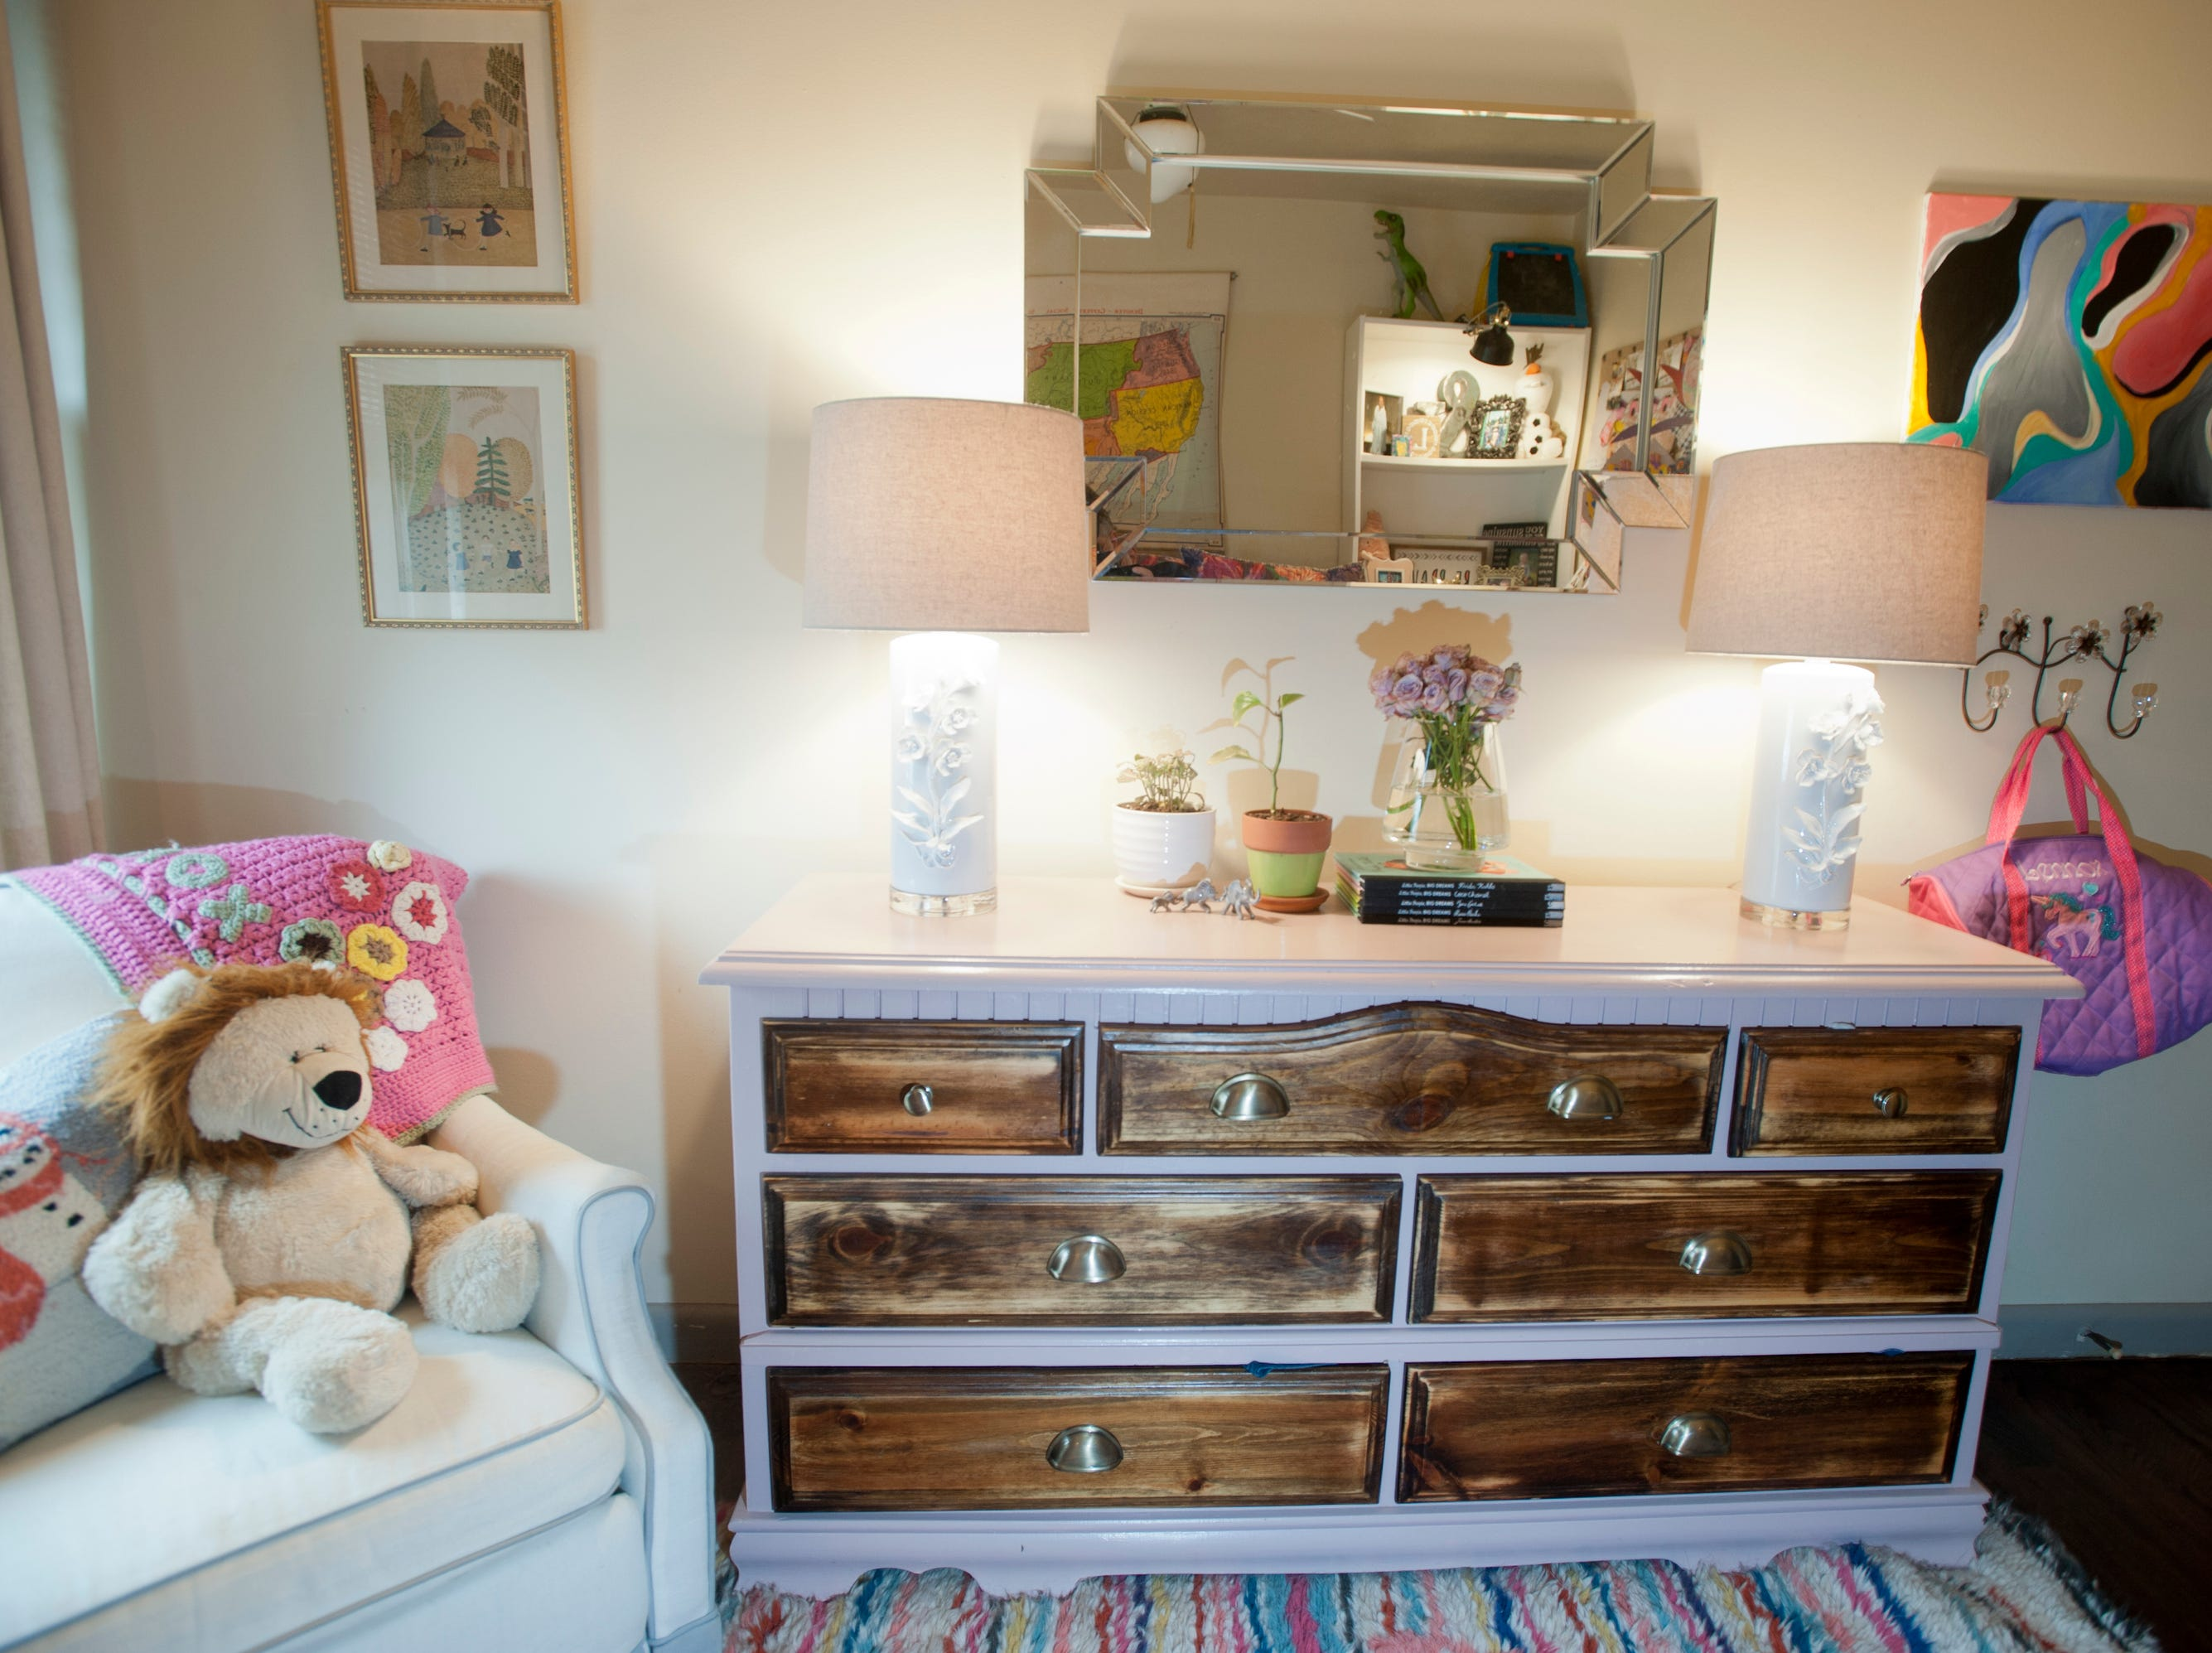 A vintage mid-century chest of drawers in Lennox' bedroom was purchased from an auction site.